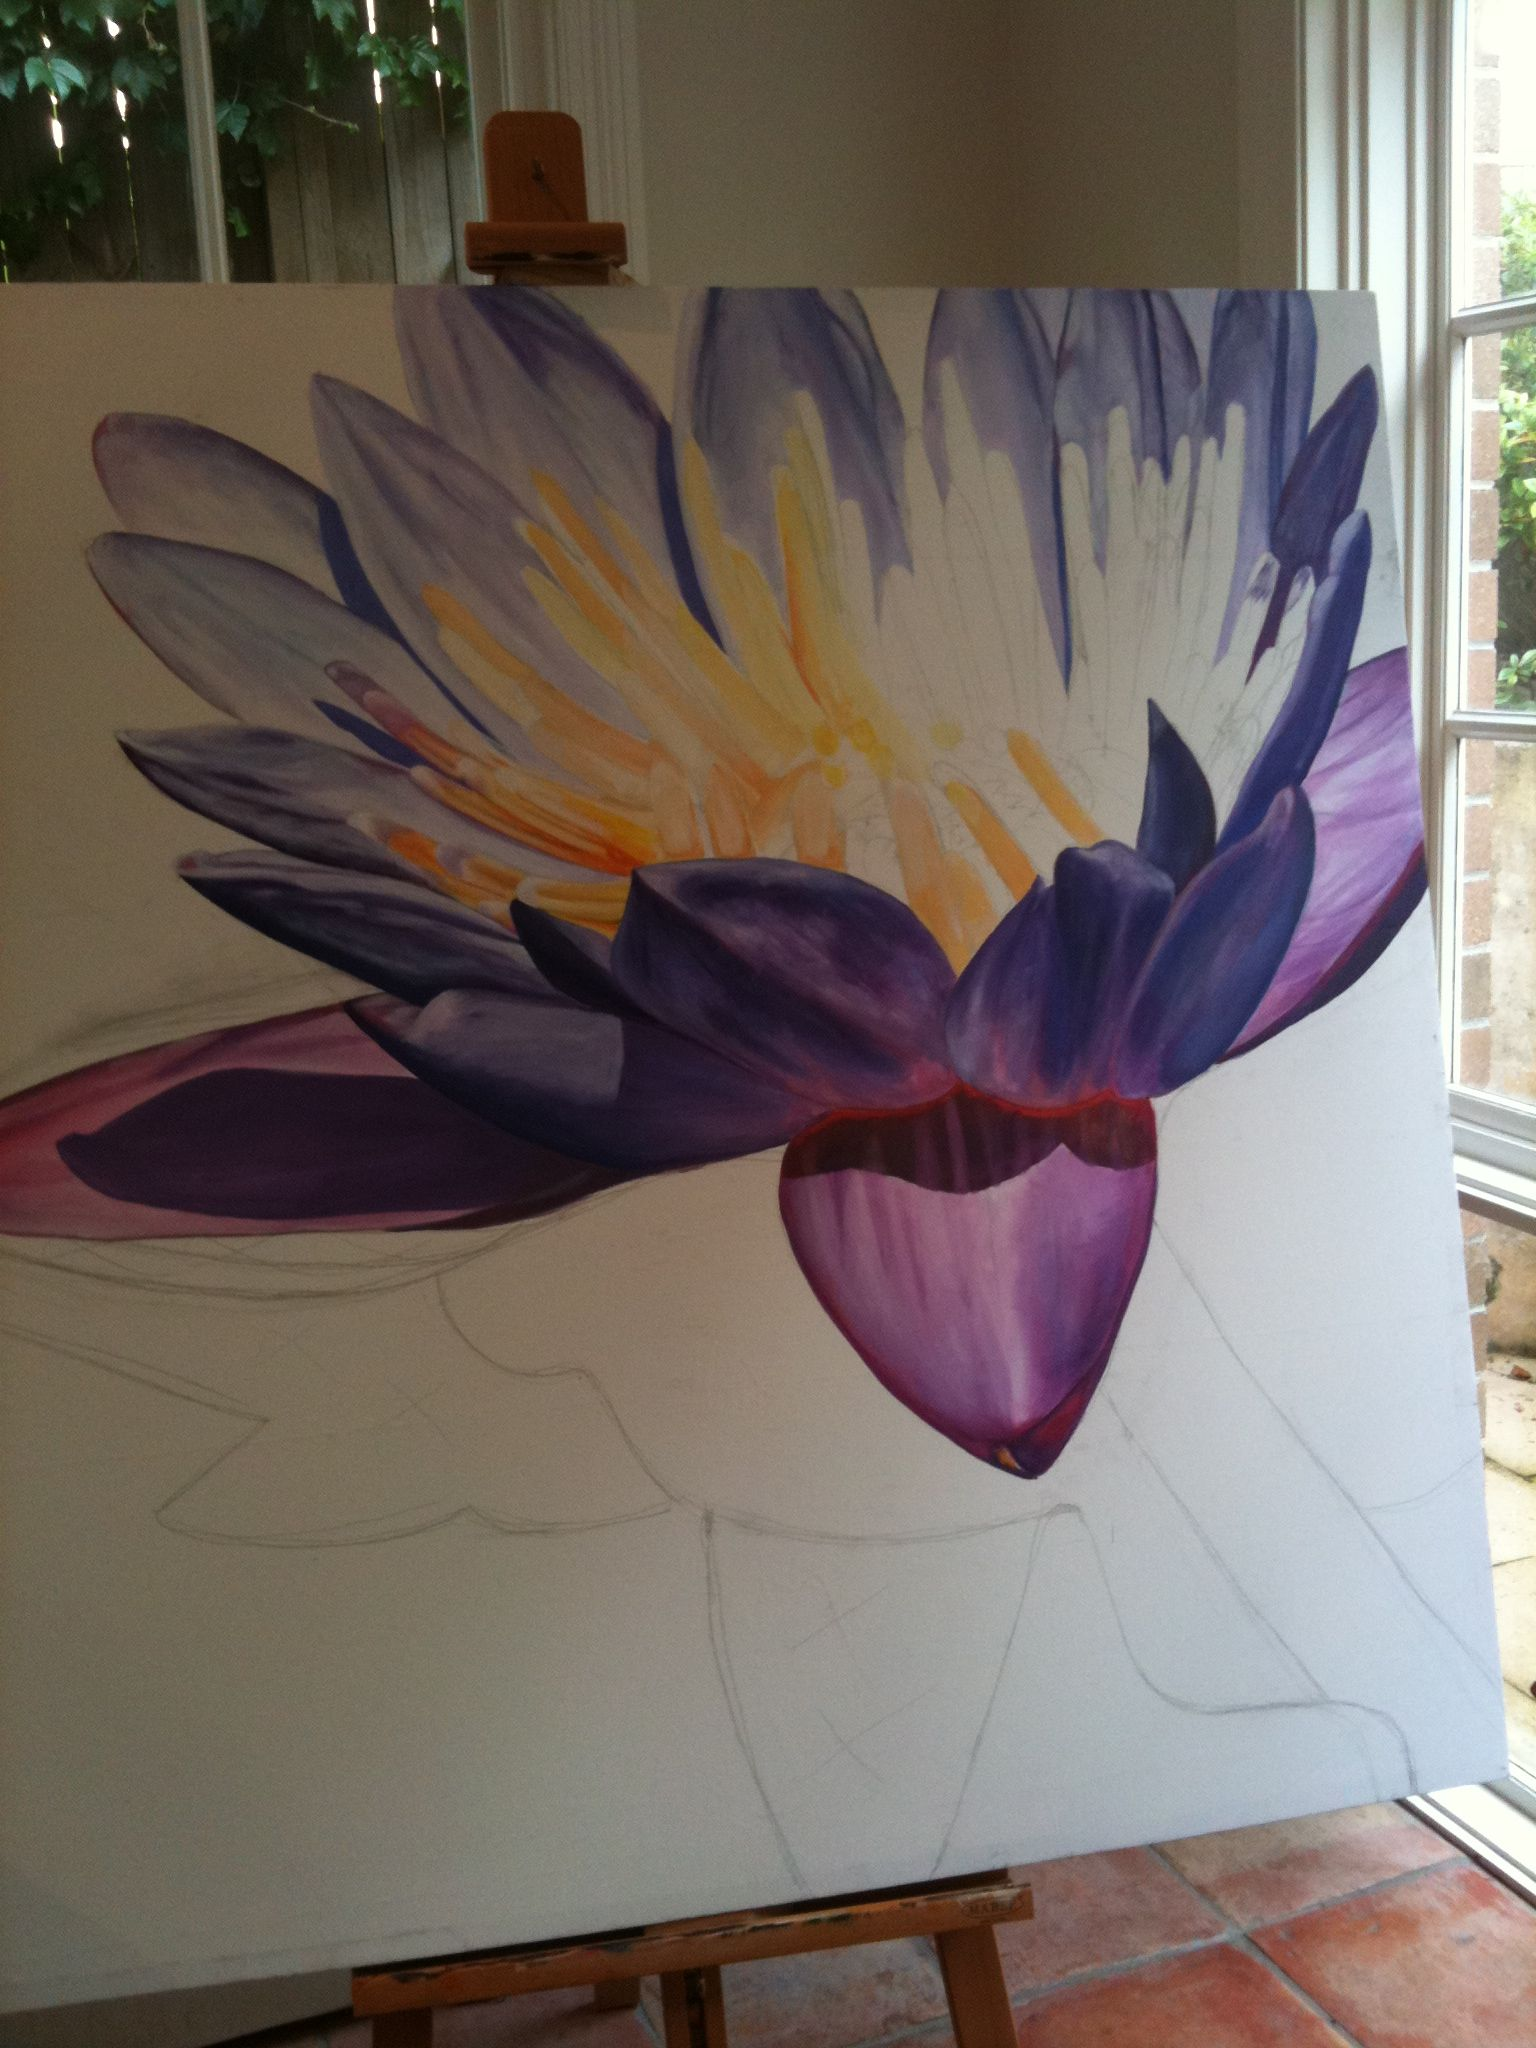 Lotus Flower Painting Symbolic From The Way Lotus Flowers Bloom